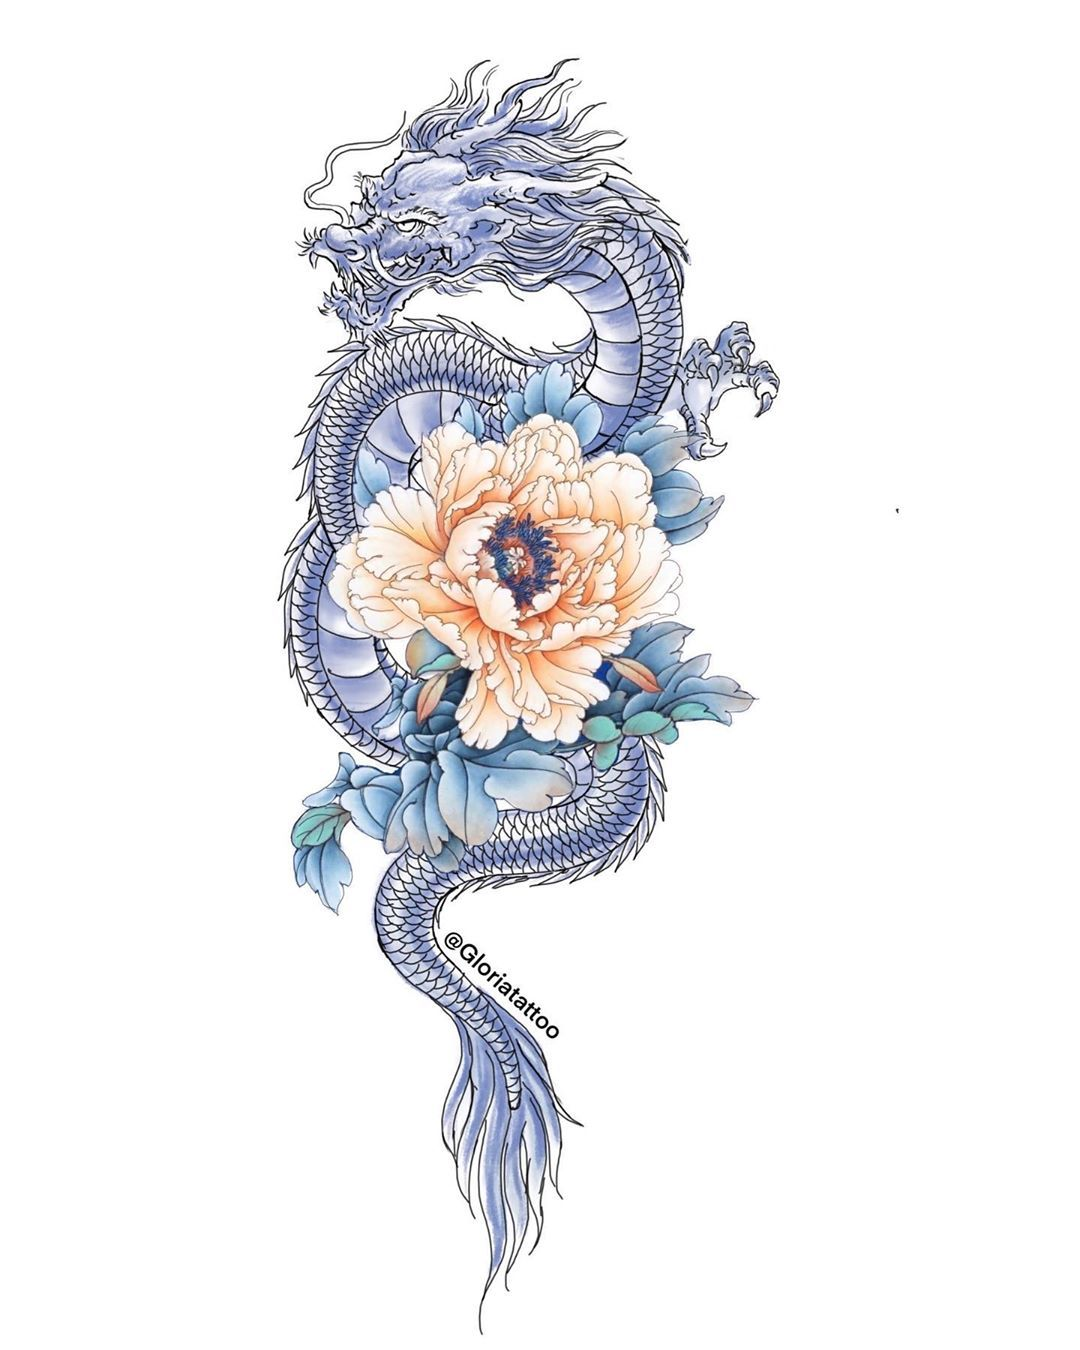 New Design Available For Appointment Hailintattoo Gmail Com Hailintattoo 1136 N La Brea Ave West Hollywood In 2020 Tattoos Dragon Tattoo Designs Dragon Tattoo